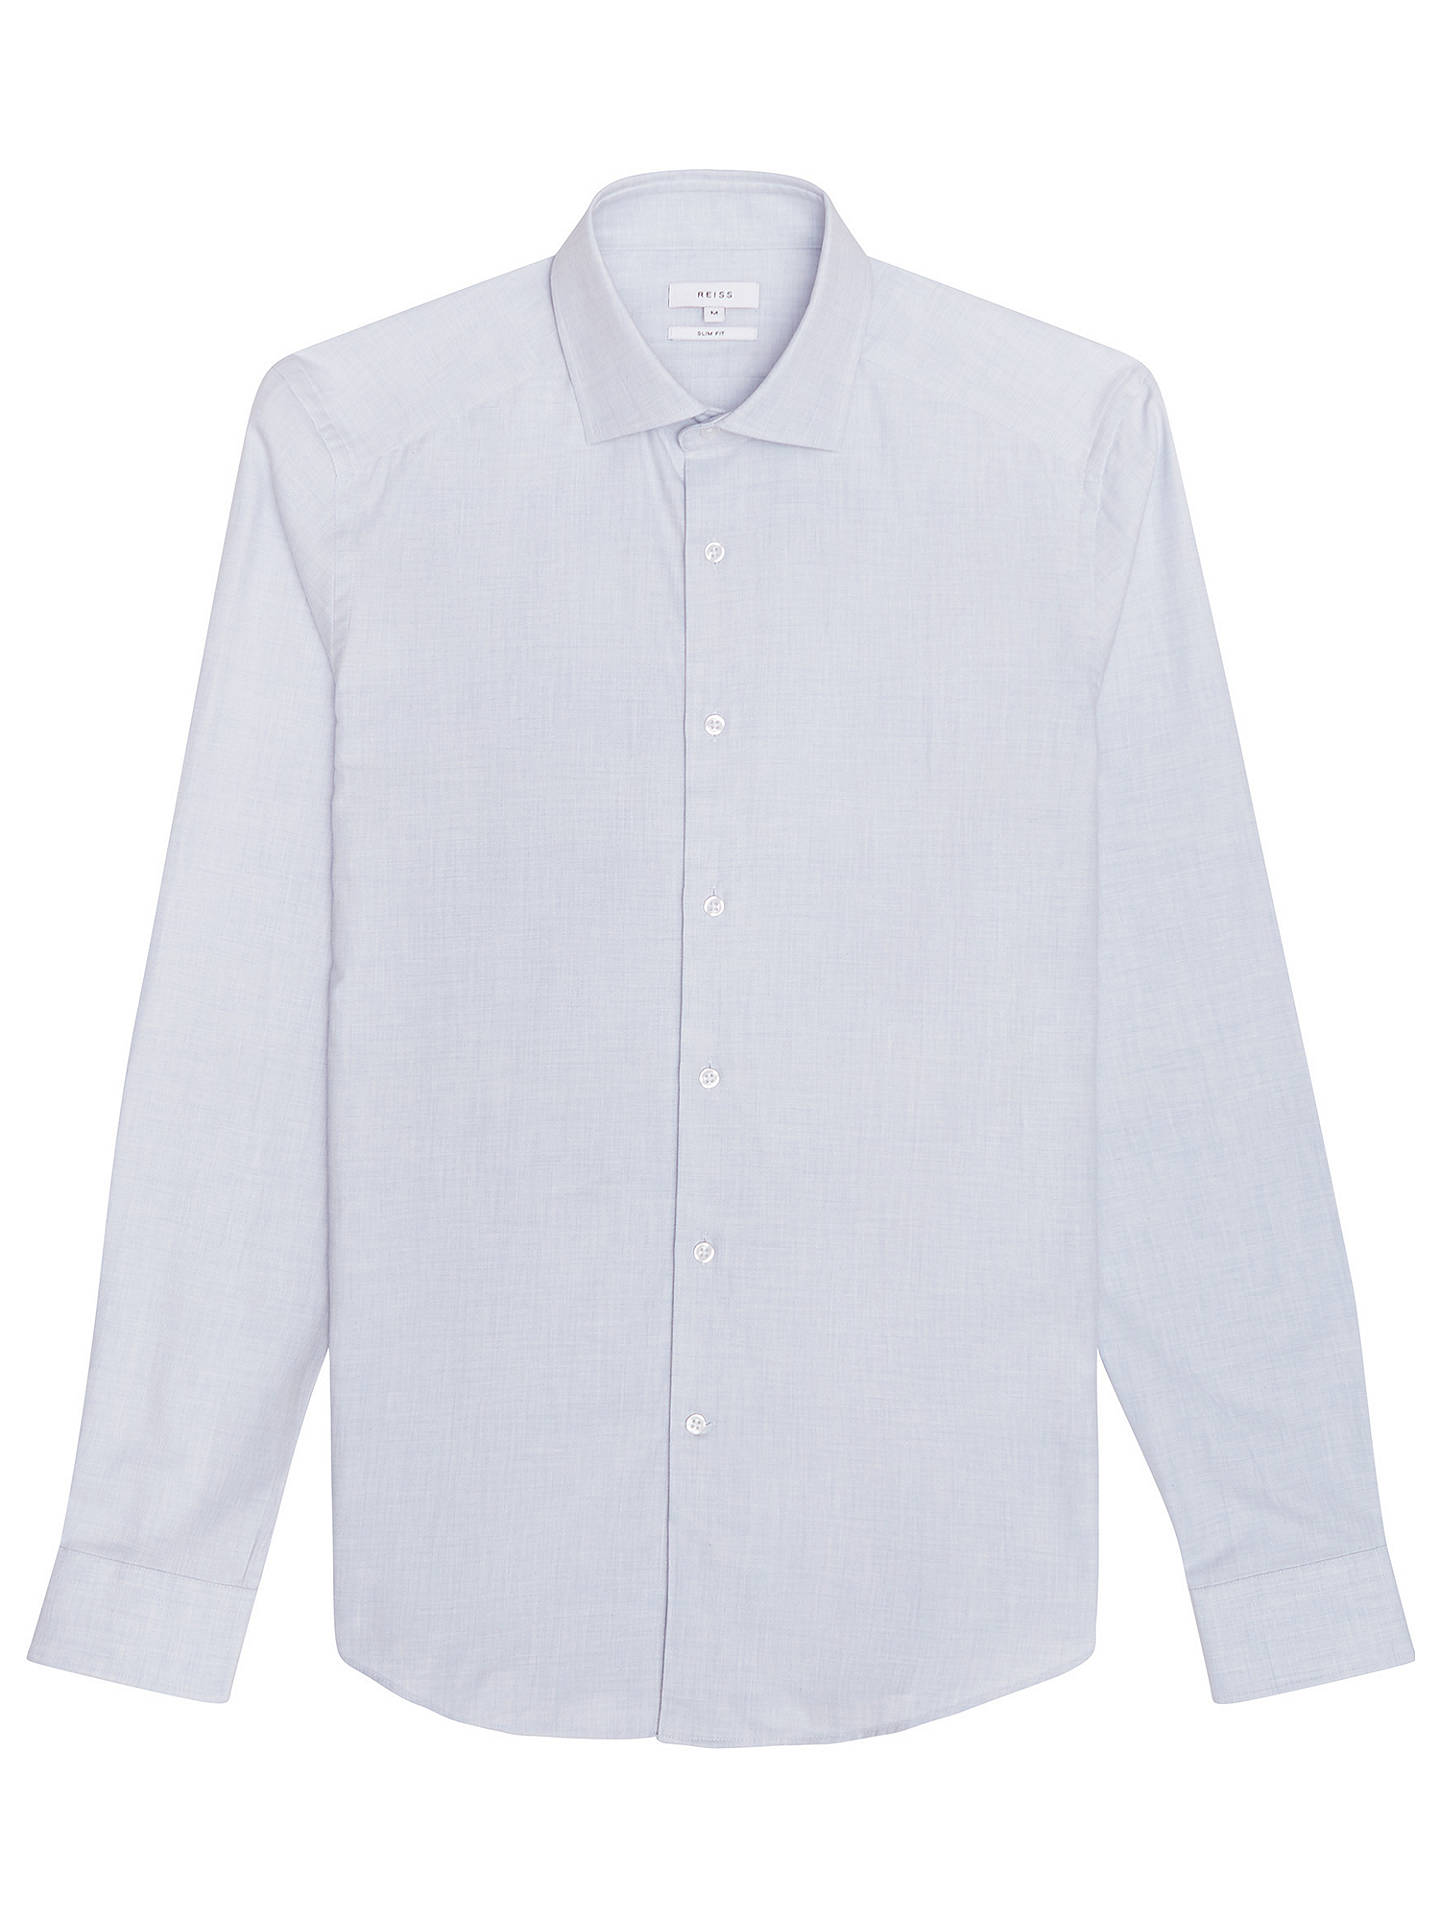 BuyReiss Zetterberg Cotton Slim Fit Shirt, Soft Blue, S Online at johnlewis.com